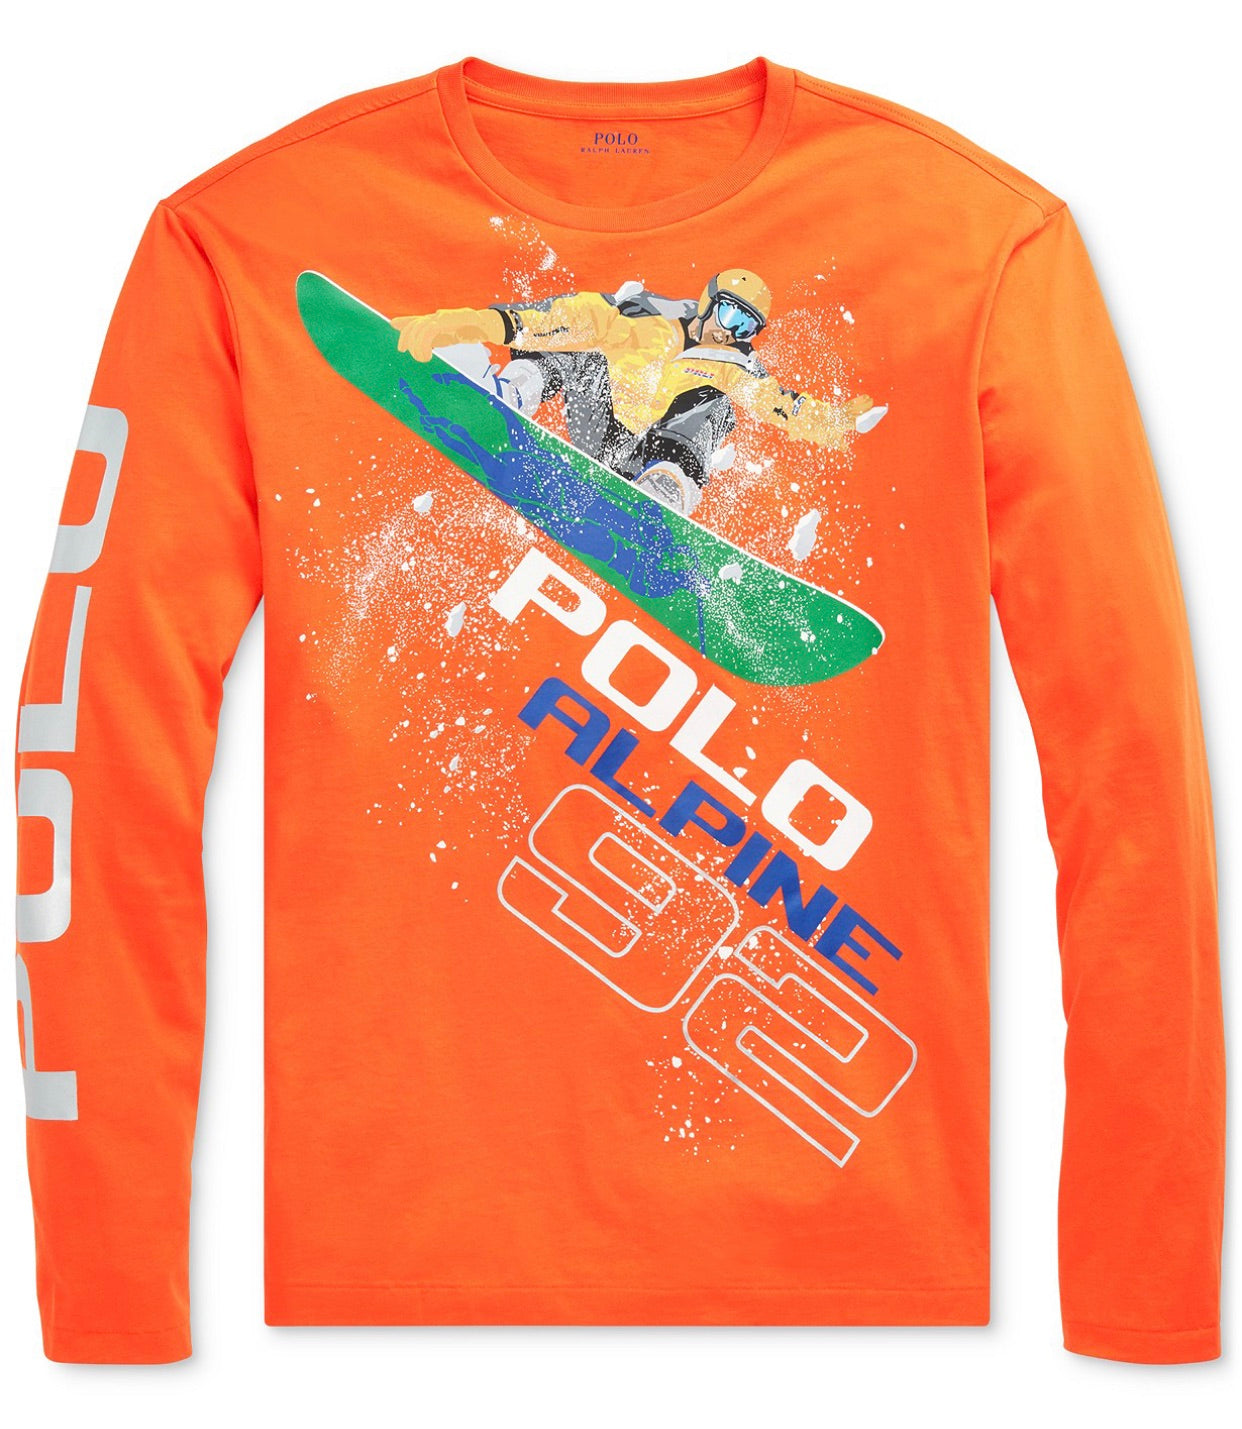 POLO RL  Holiday X Games Long Sleeve Tee